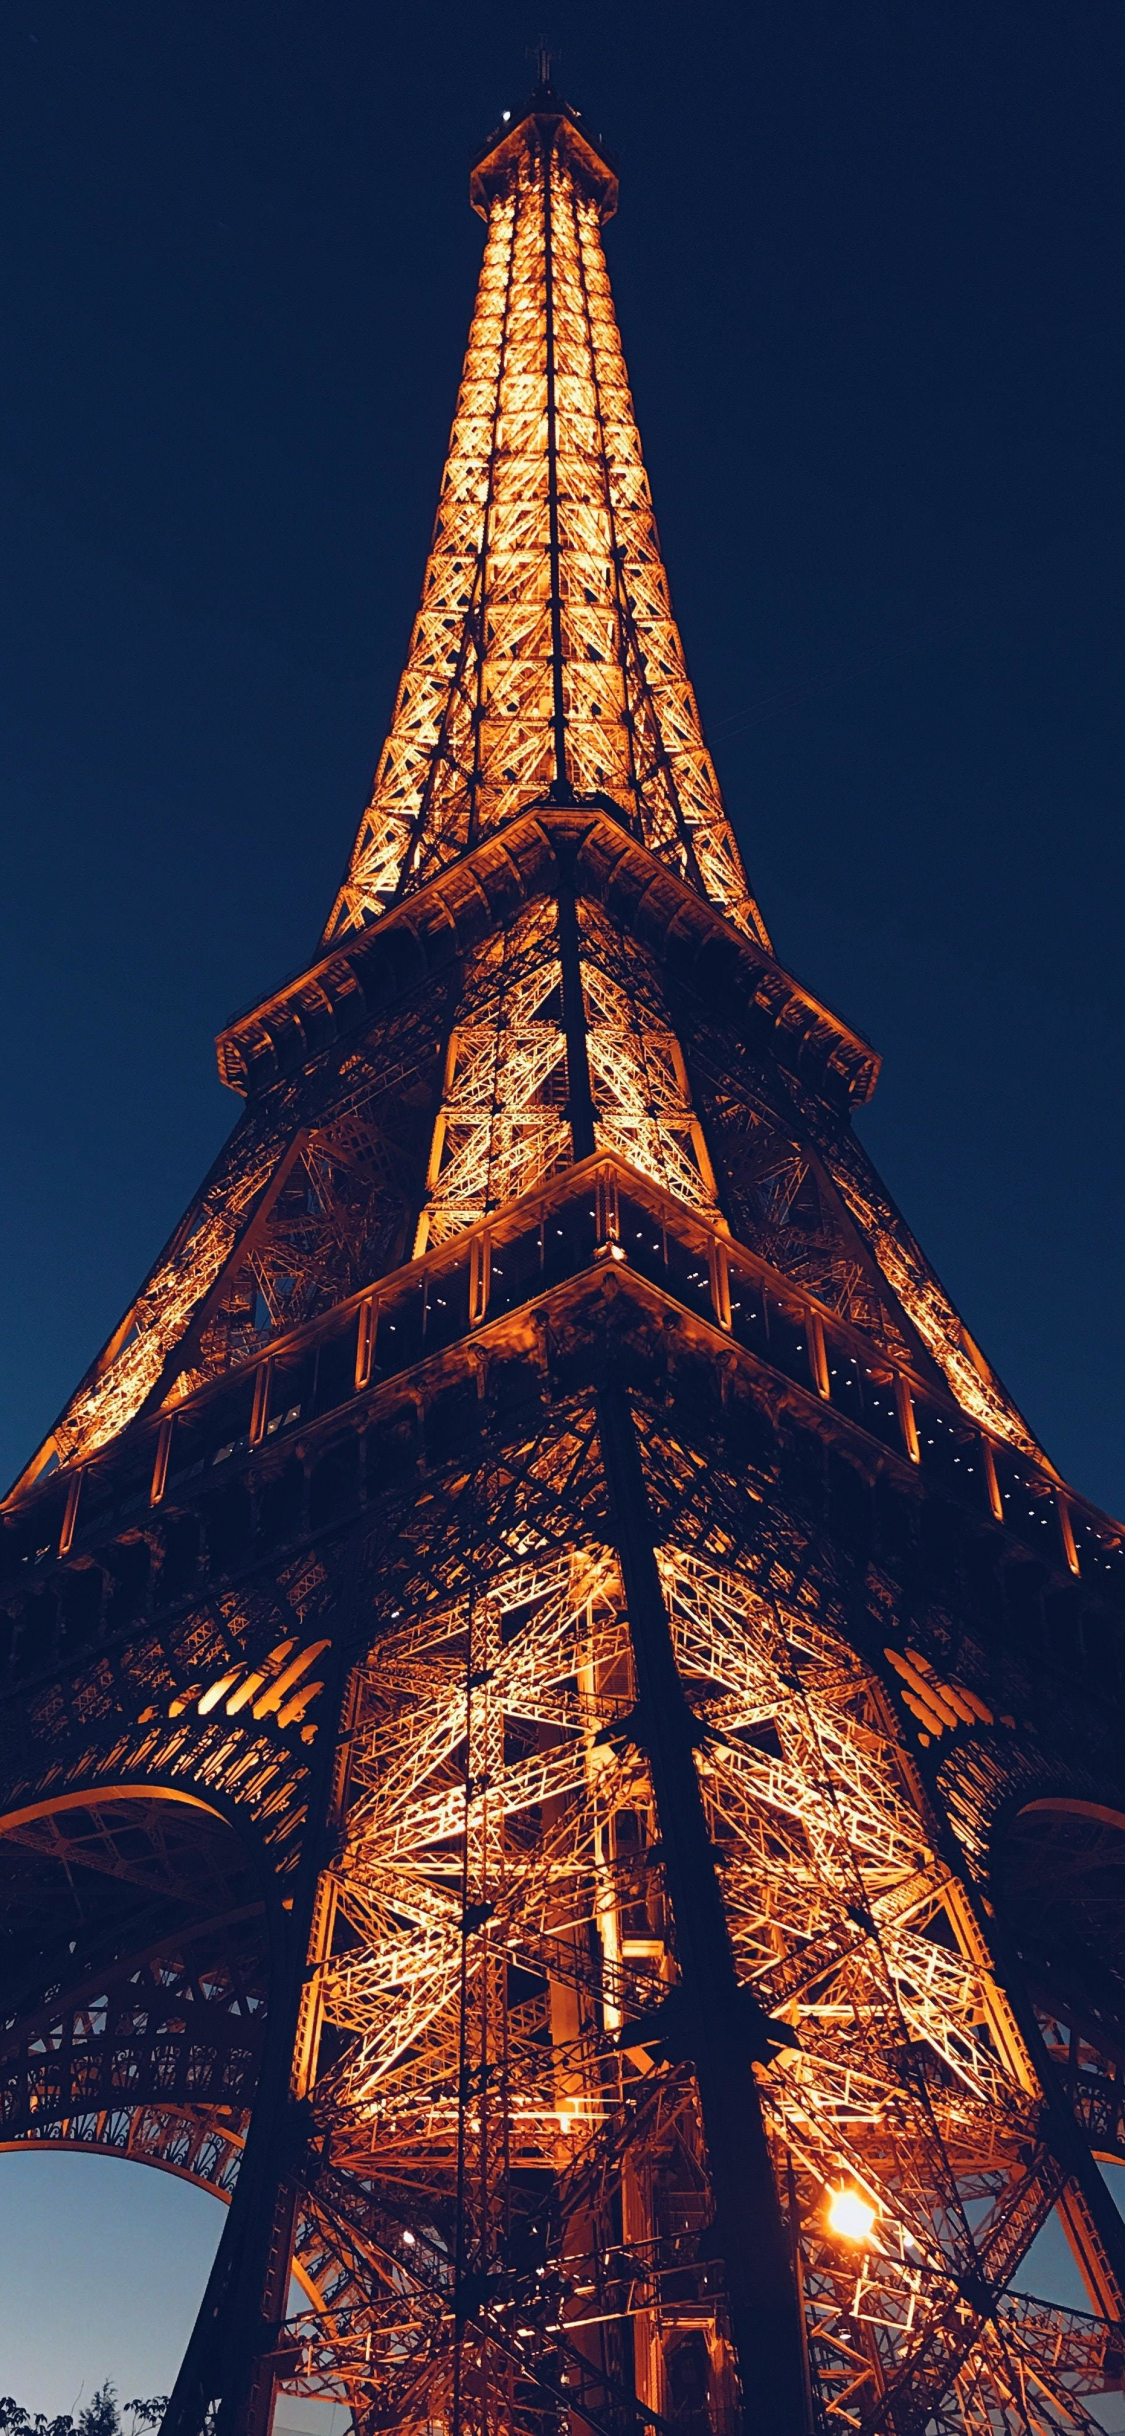 Download 1125x2436 Wallpaper Eiffel Tower City Paris Night Architecture Iphone X 1125x2436 Hd Image Background 18369